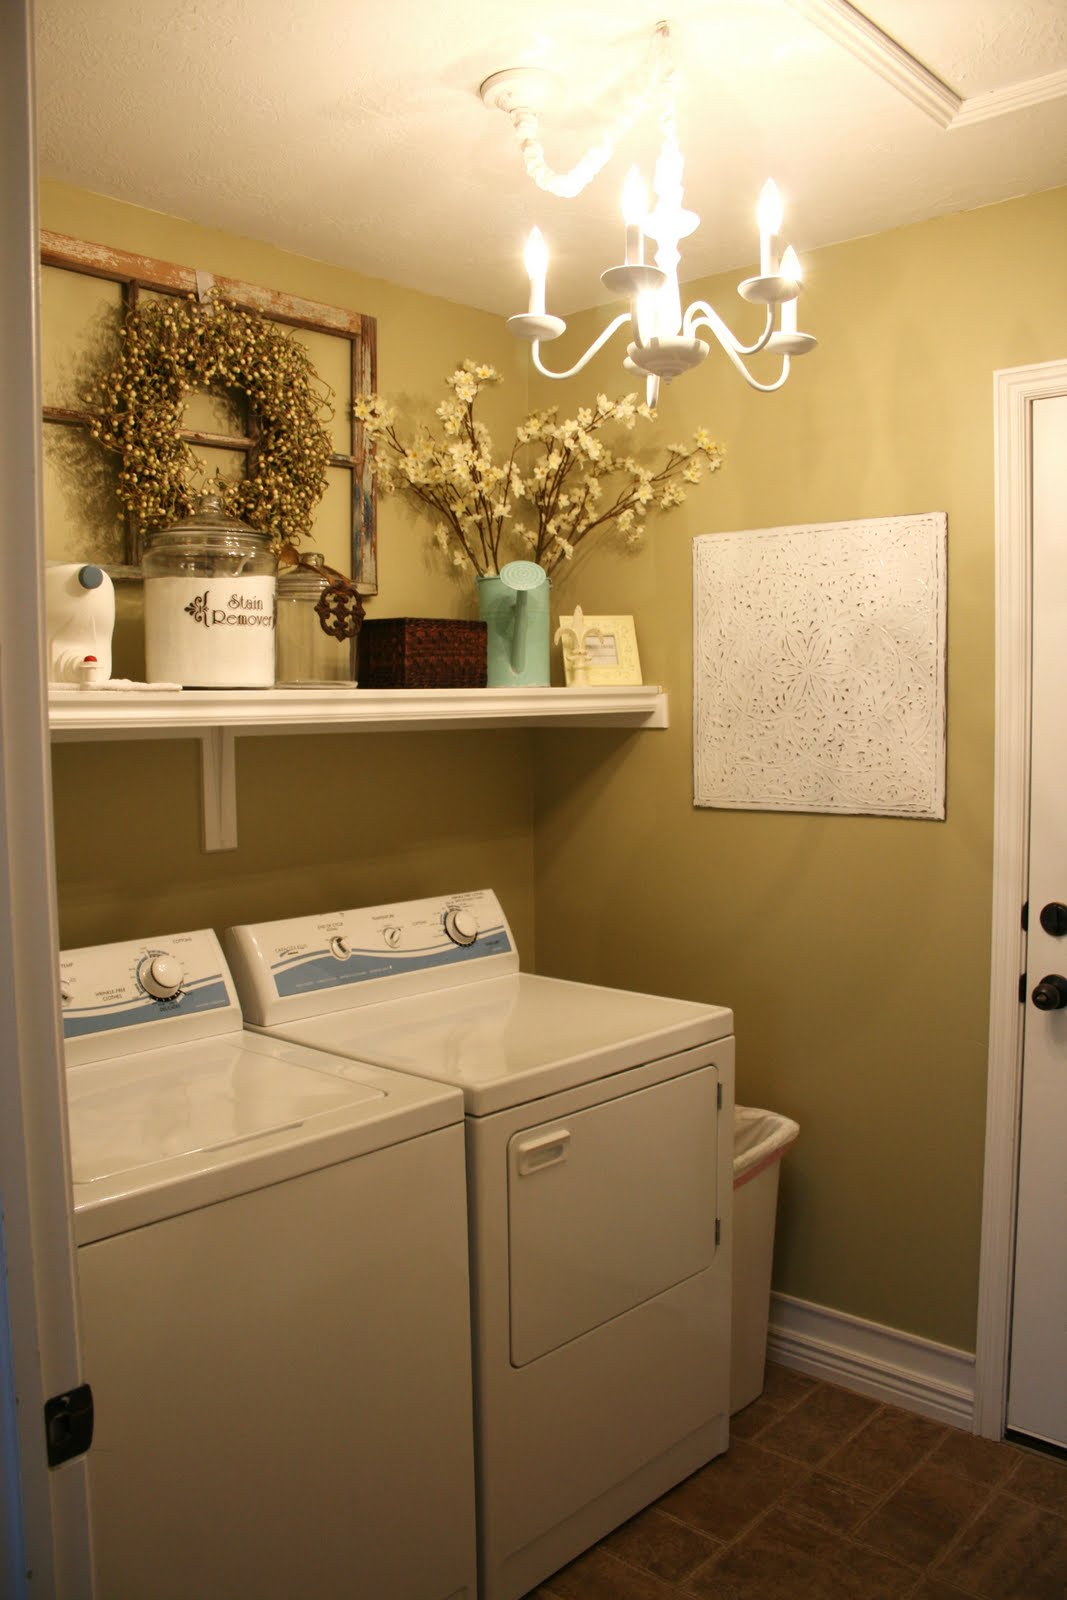 Sassy sites home tour the laundry room for Utility room ideas